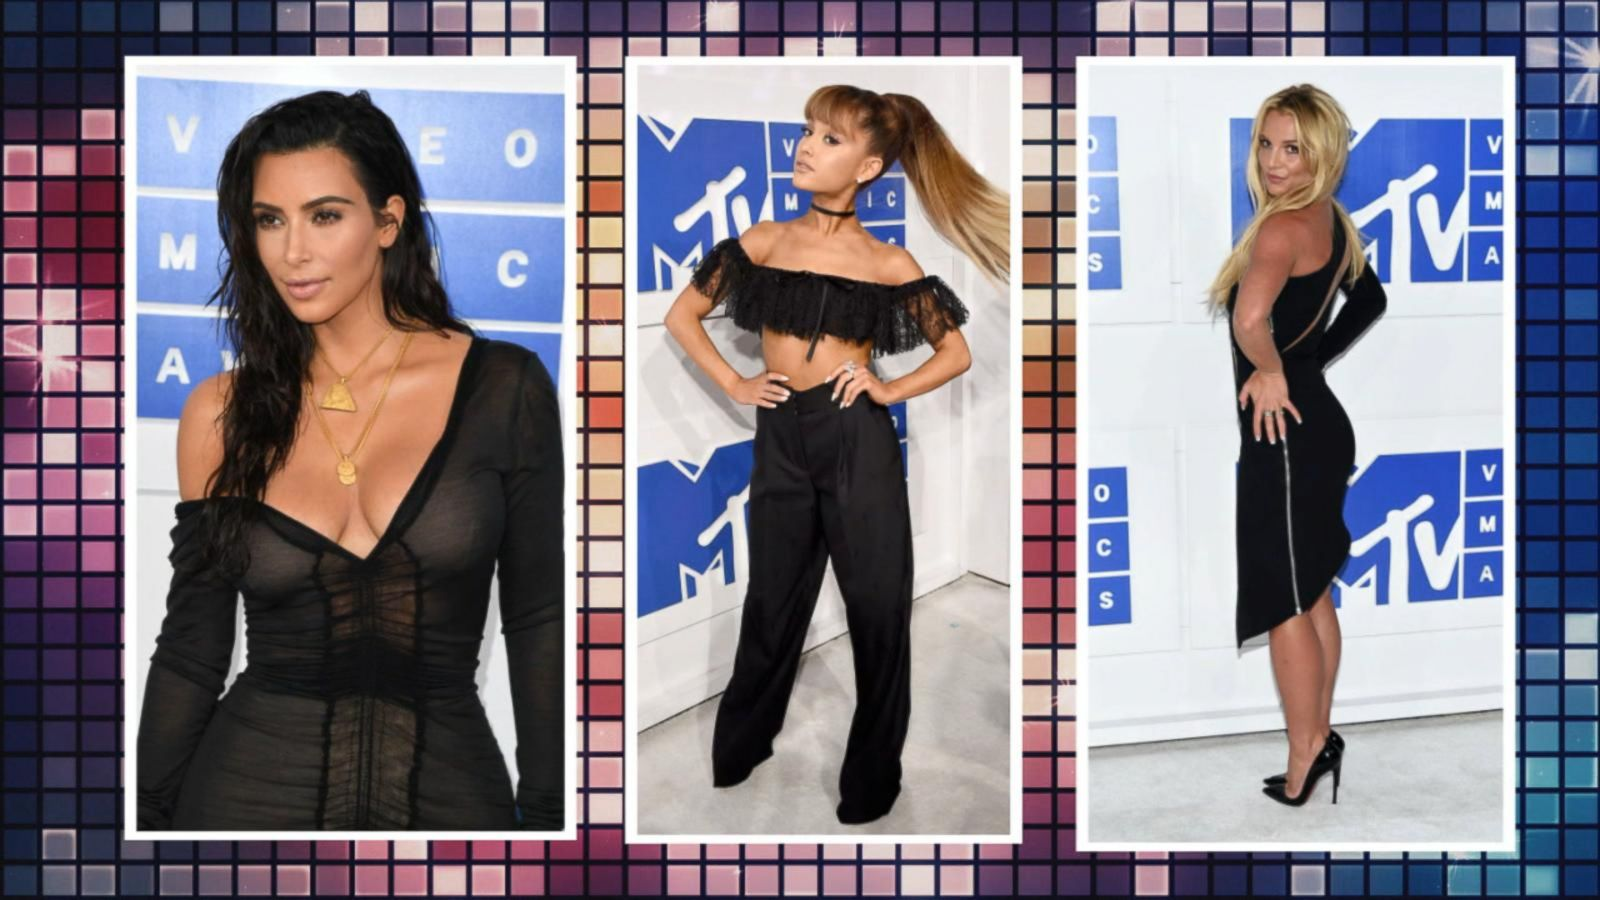 VIDEO: VMAs 2016: Fashion Highlights From the Red Carpet